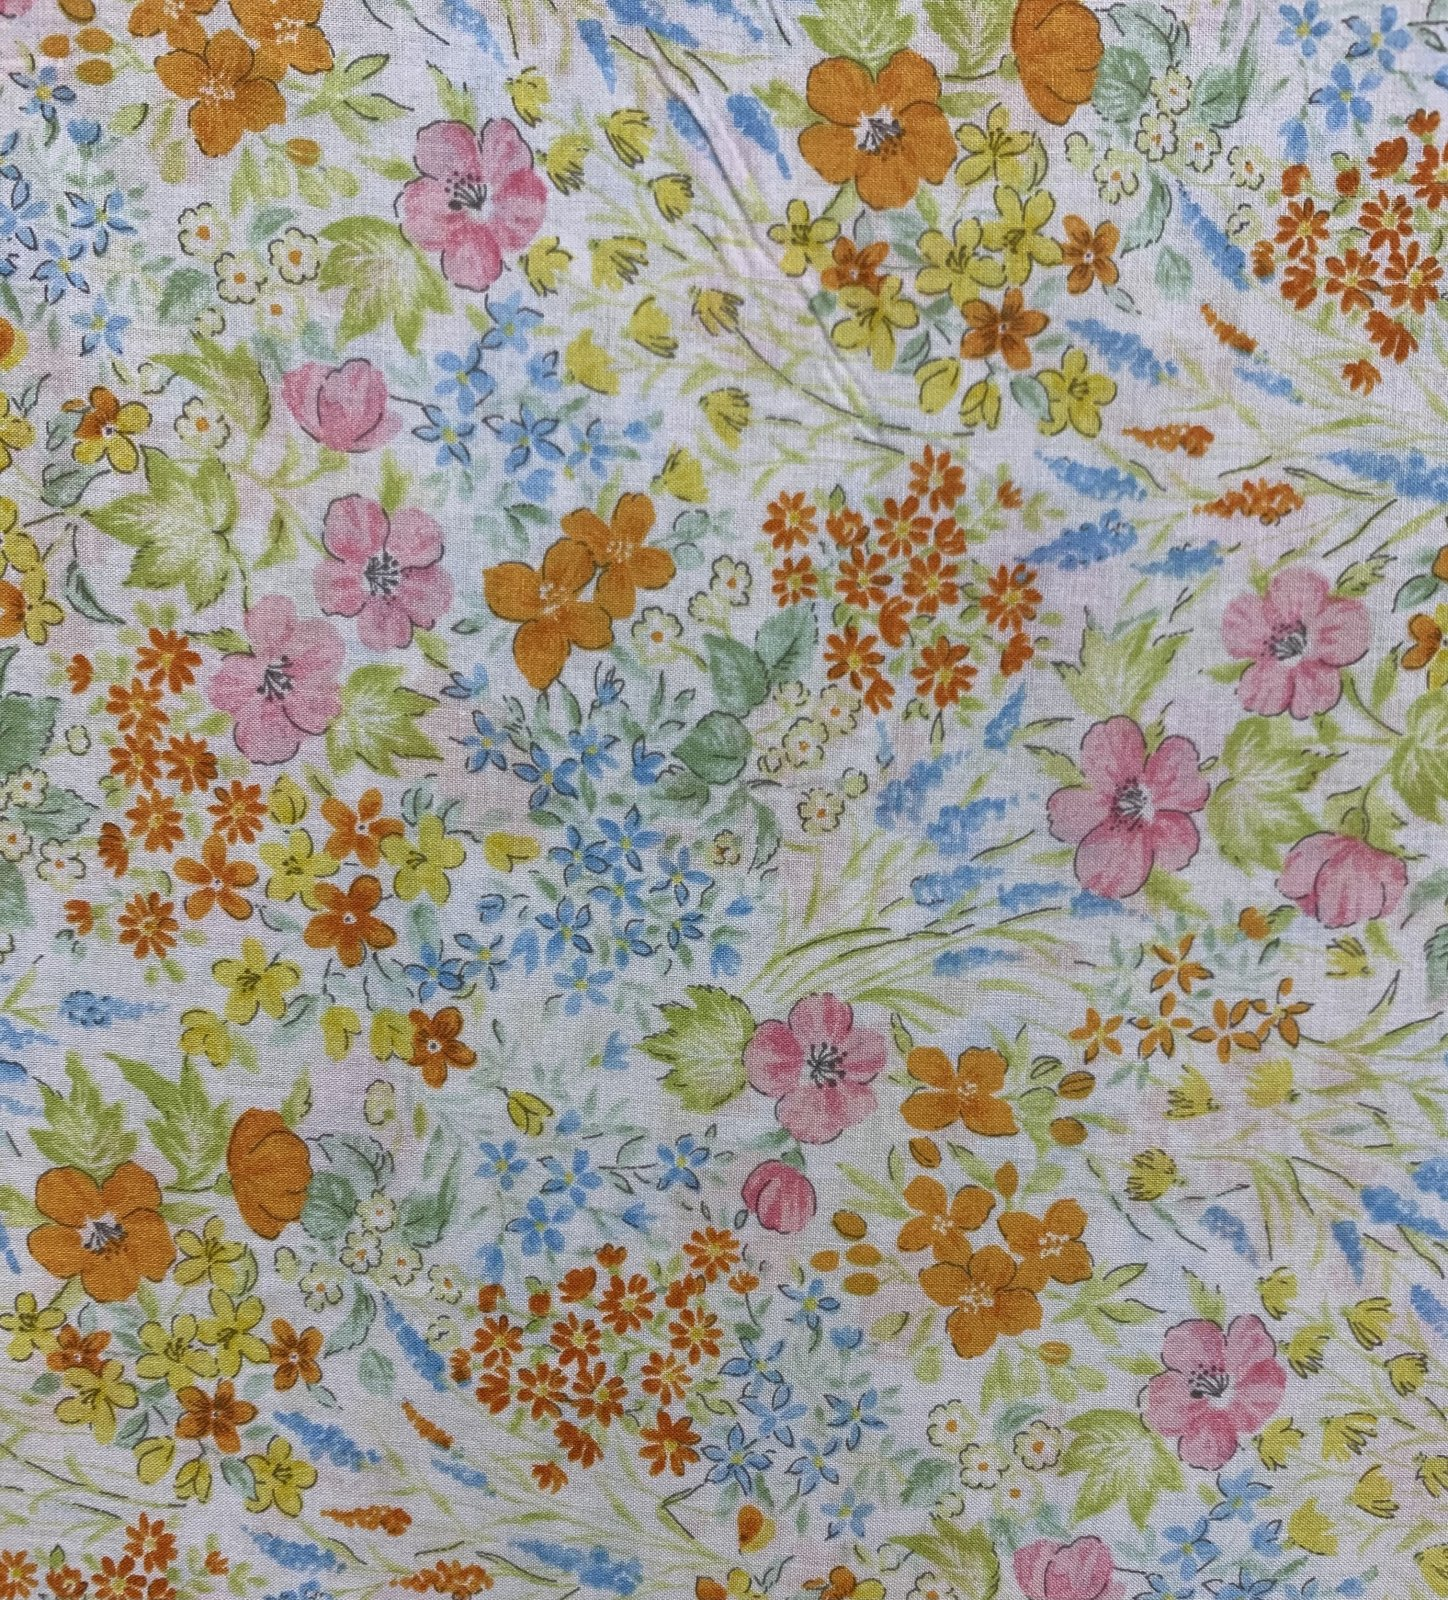 Japanese Fabric - Pretty Spring Floral